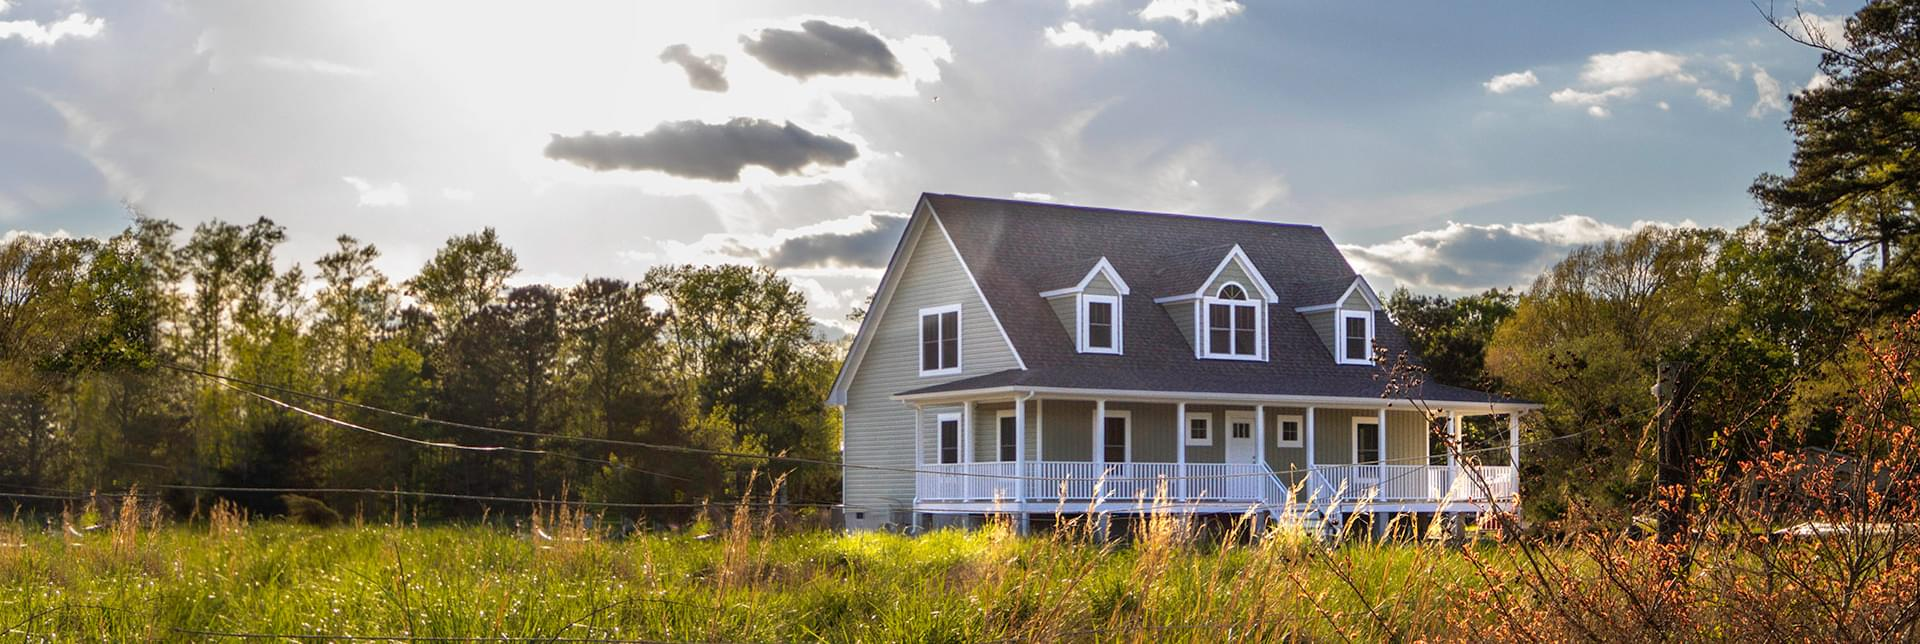 New Homes in Nash County NC